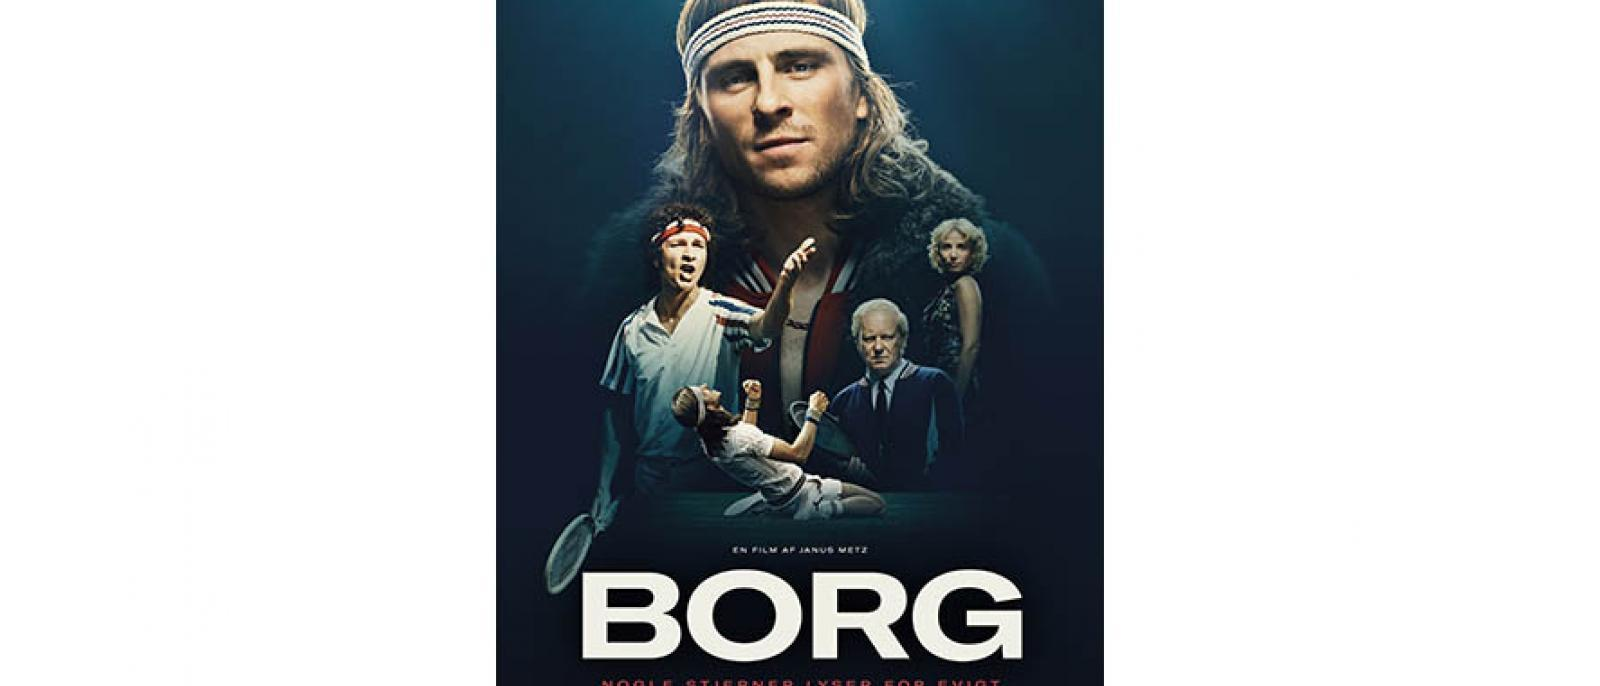 borg-685x1015-hovedposter-dk-new